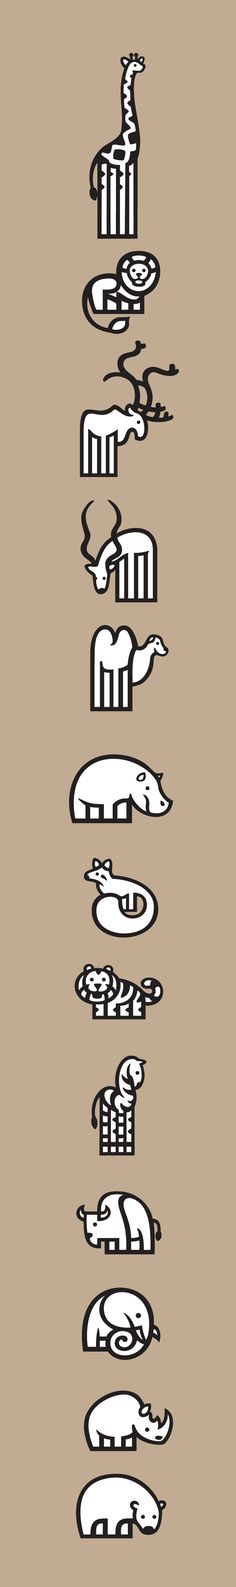 Pictograms - ZOO by Jorge Dias, via Behance #grafica #illustrazione #animali